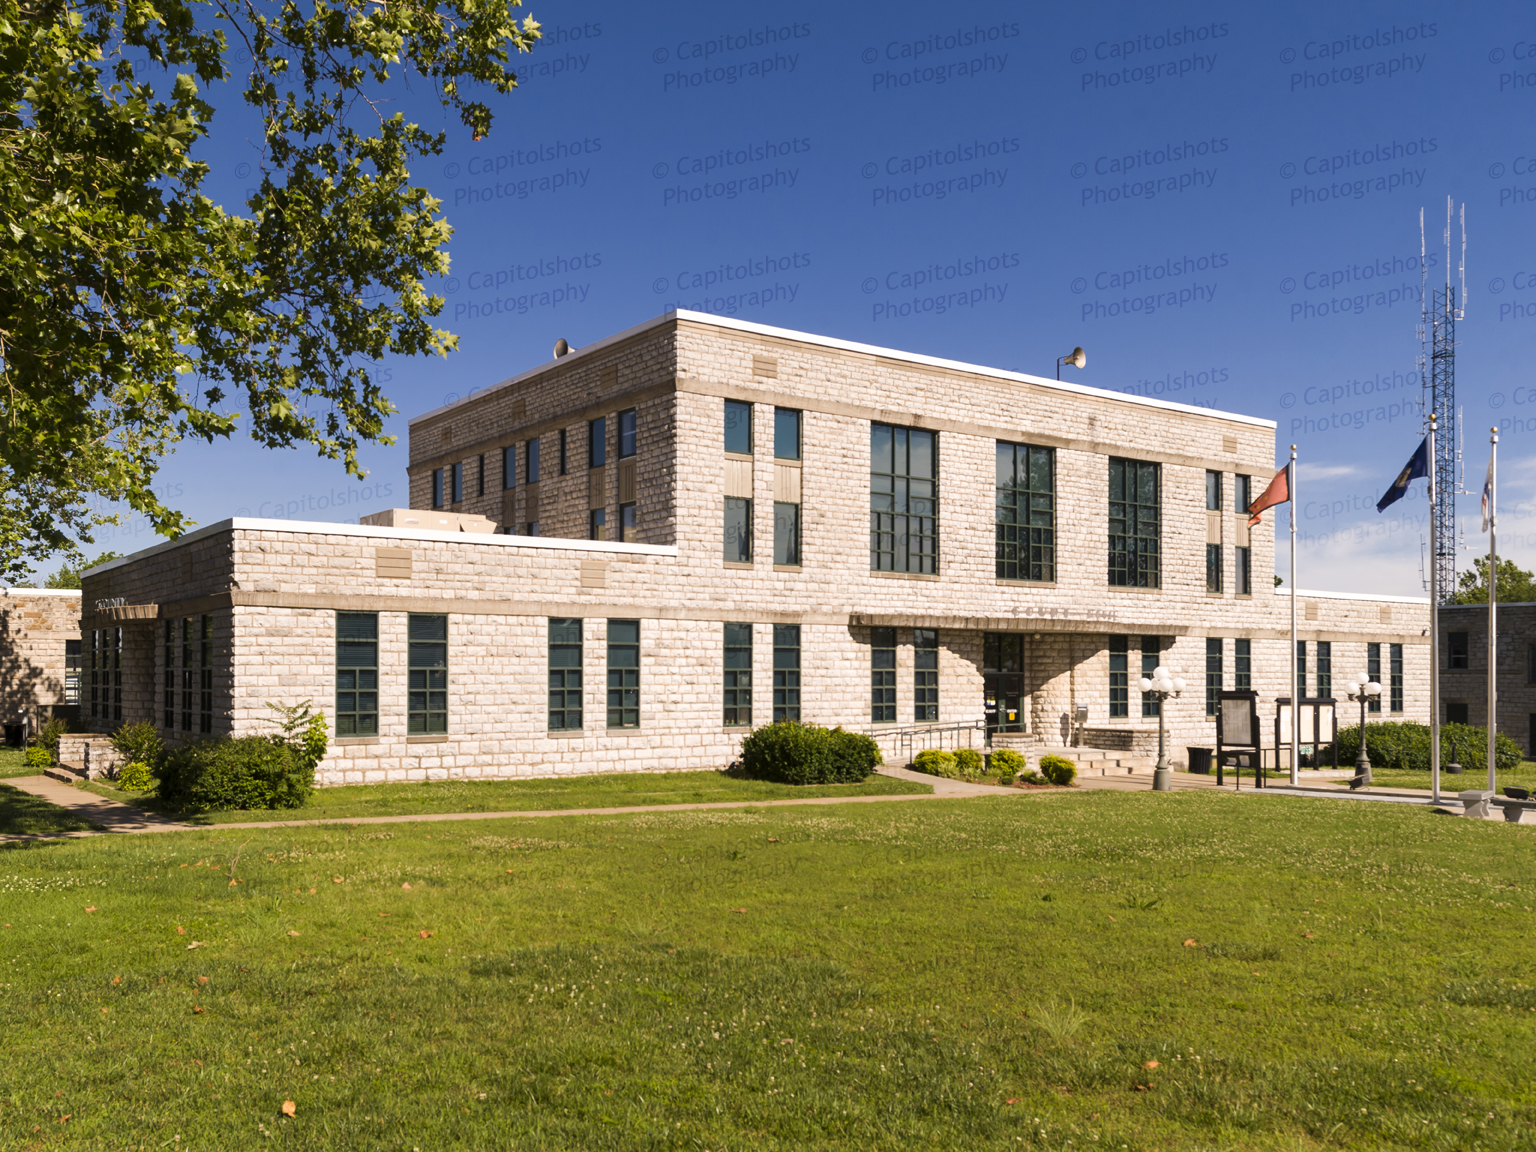 Delaware County Courthouse